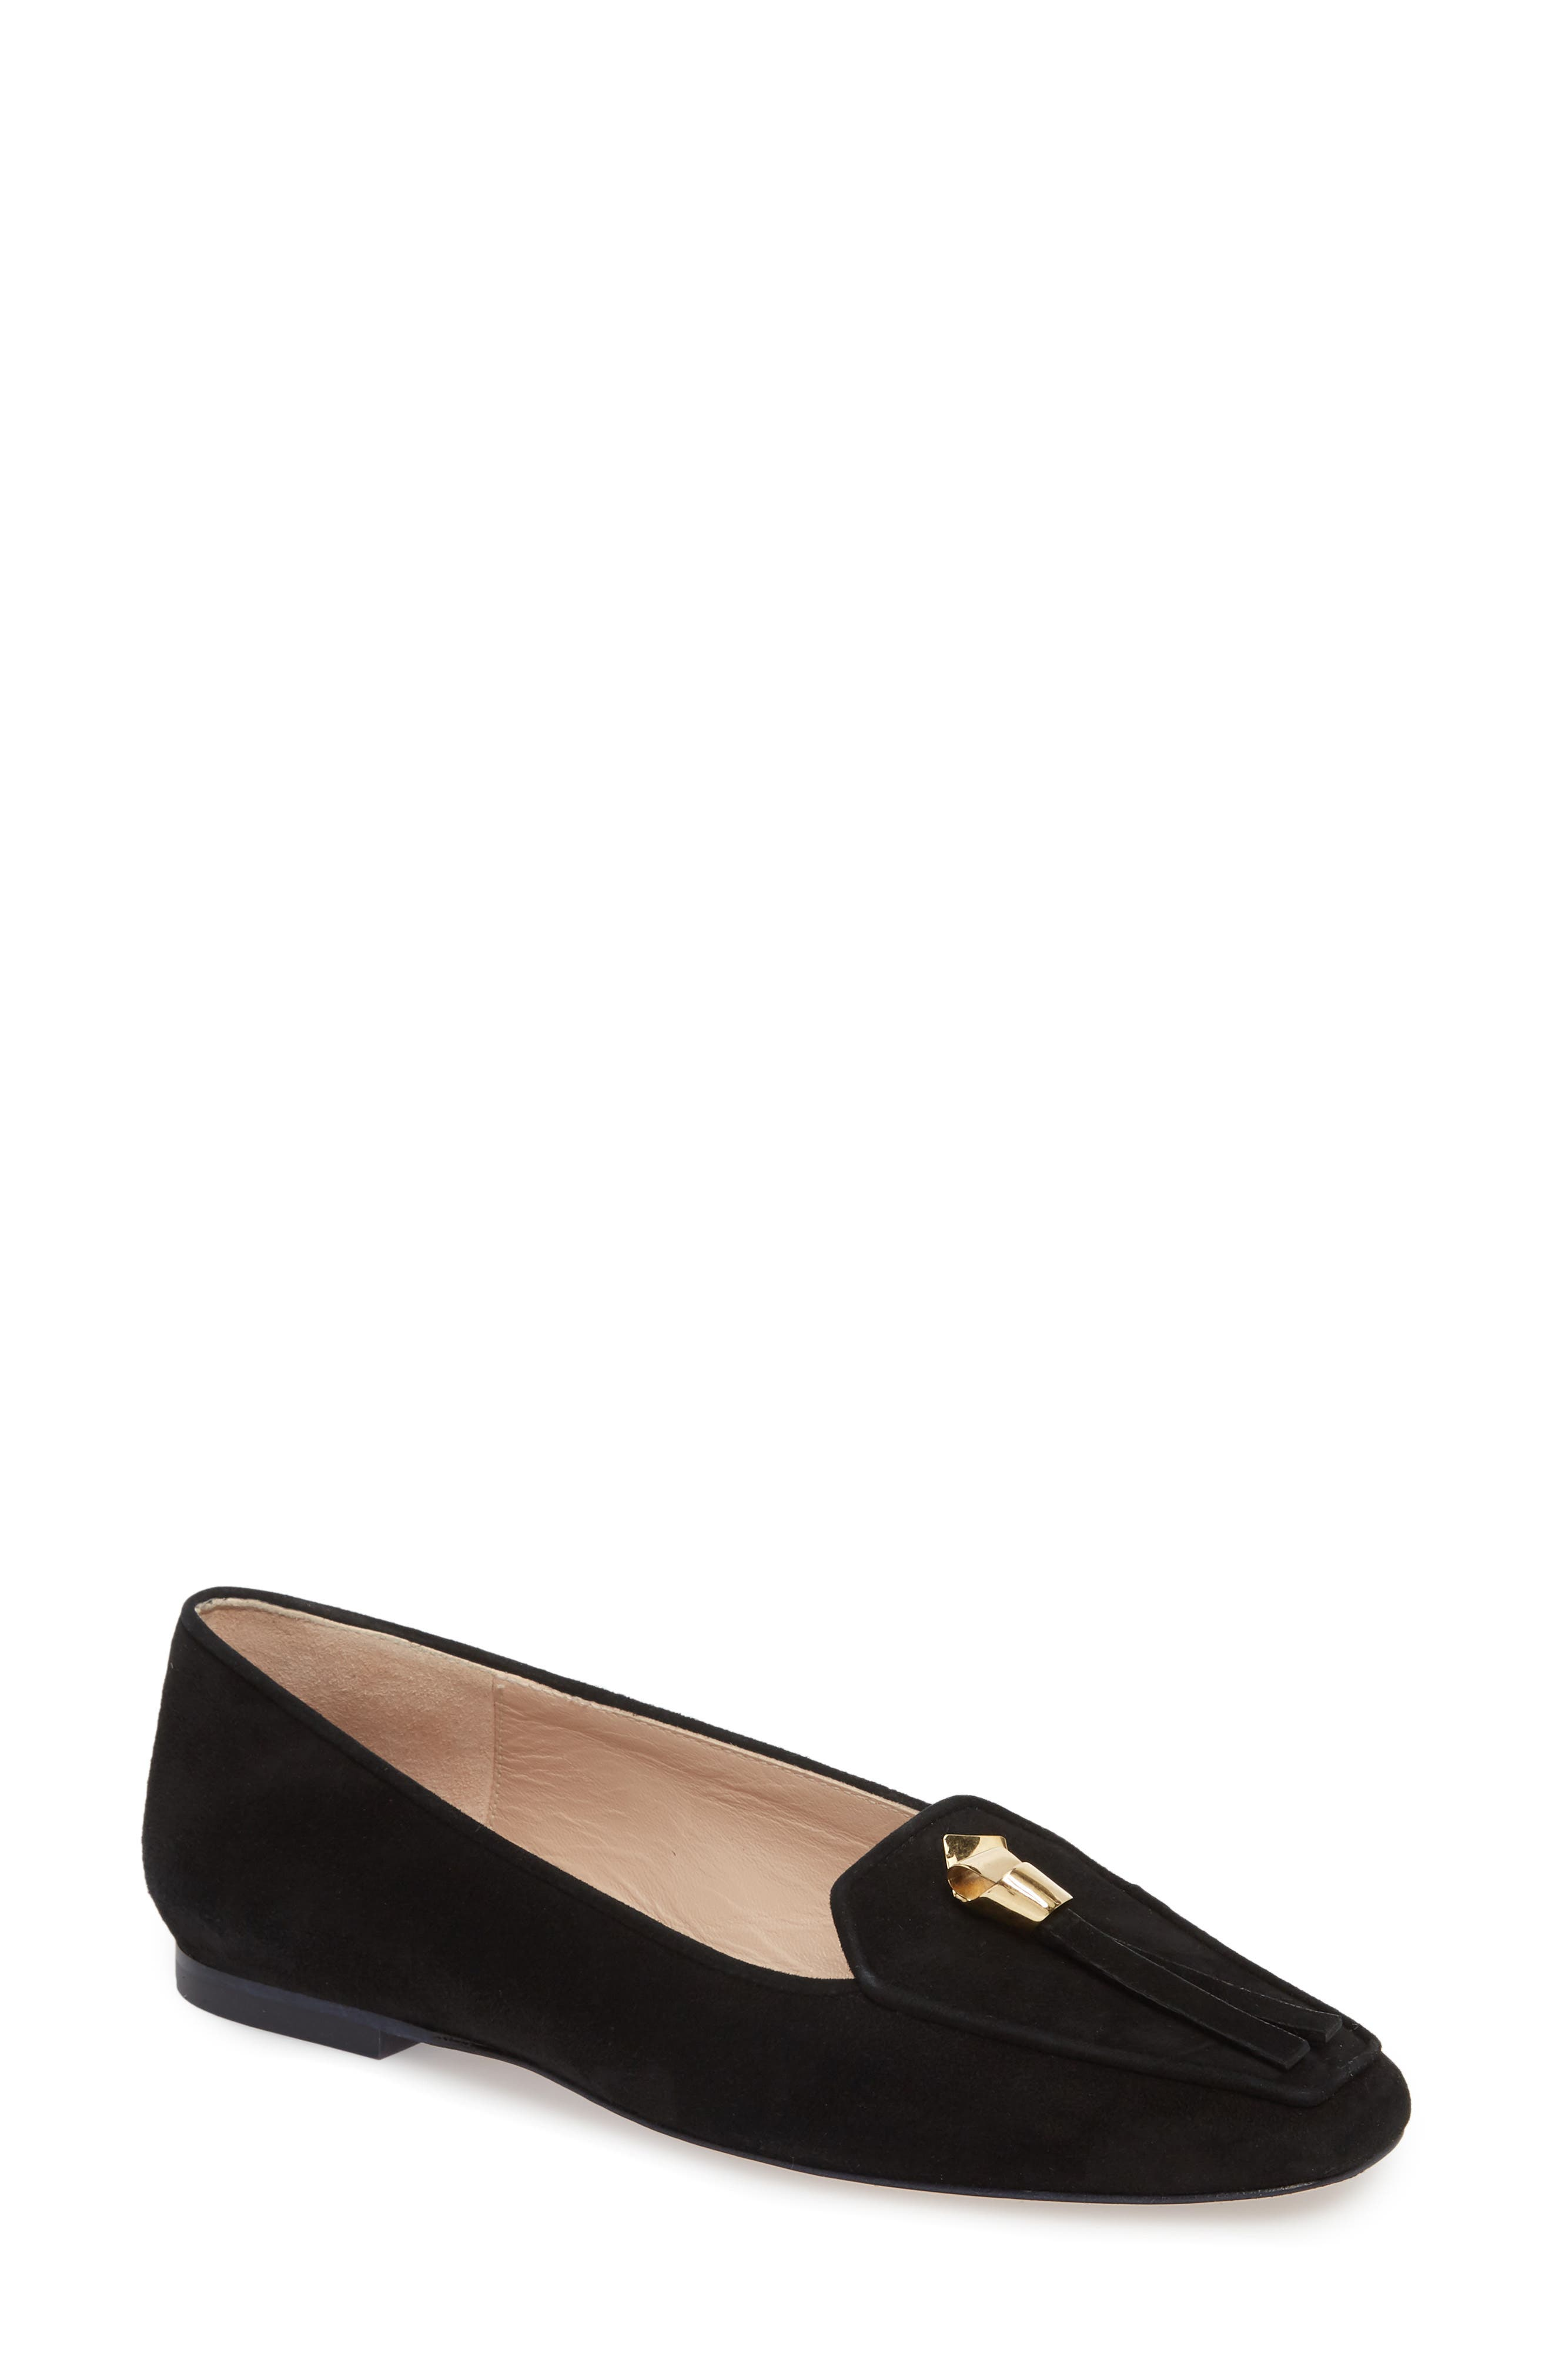 Stuart Weitzman Slipknot Loafer, Black